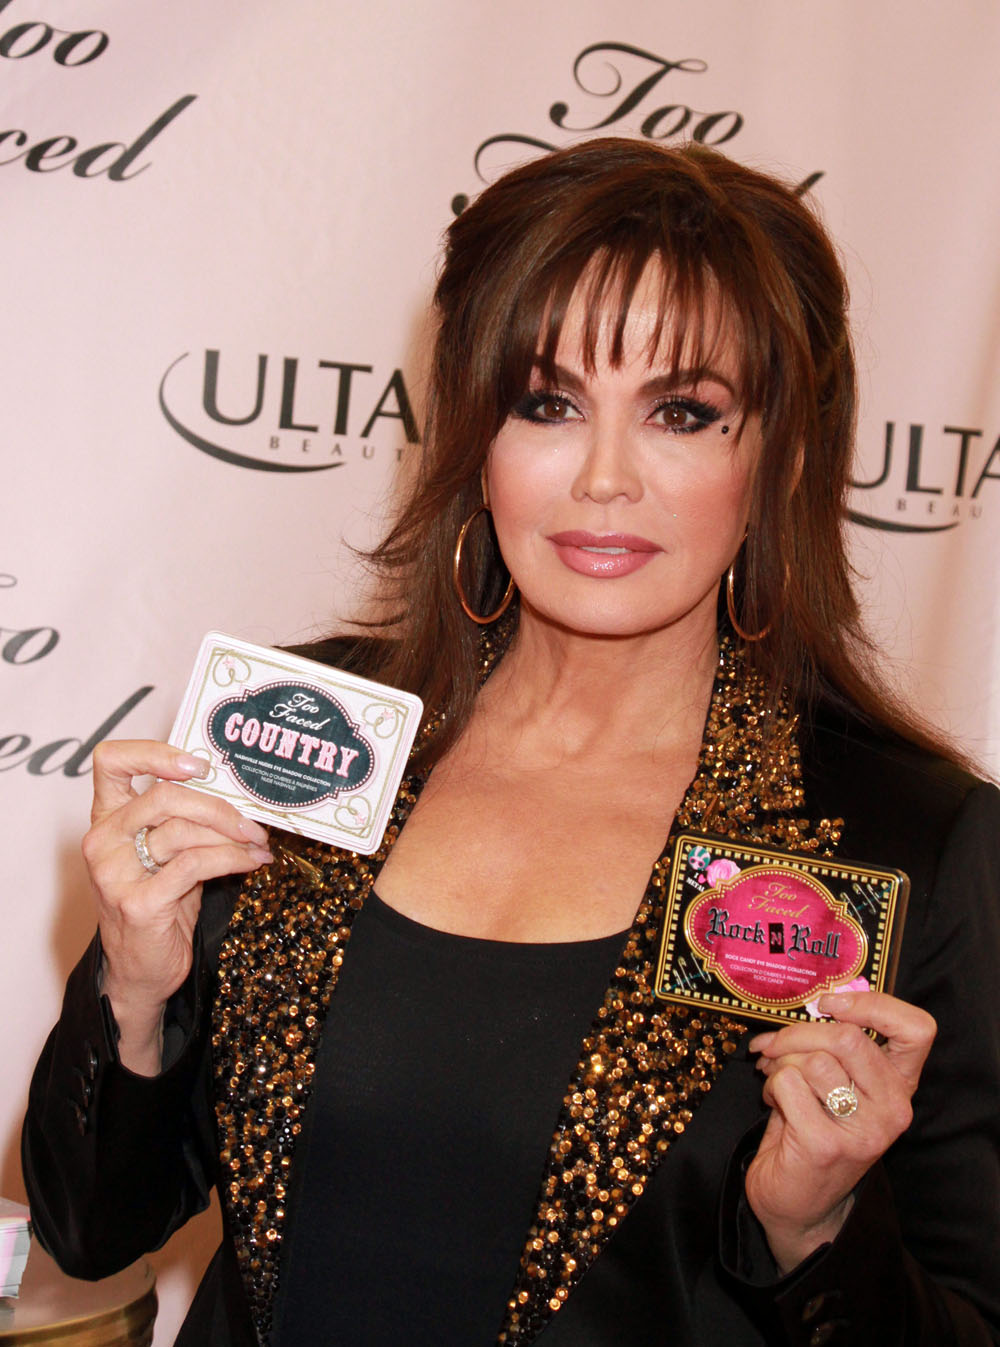 marie osmond this is the way that i feelmarie osmond this is the way that i feel, marie osmond doll, marie osmond instagram, marie osmond 1973, marie osmond adora belle, marie osmond height weight, marie osmond rose, marie osmond paper roses, marie osmond faints, marie osmond youtube videos, marie osmond, marie osmond husband, marie osmond facebook, marie osmond wikipedia, marie osmond net worth, marie osmond plastic surgery, marie osmond age, marie osmond son, marie osmond measurements, marie osmond wedding